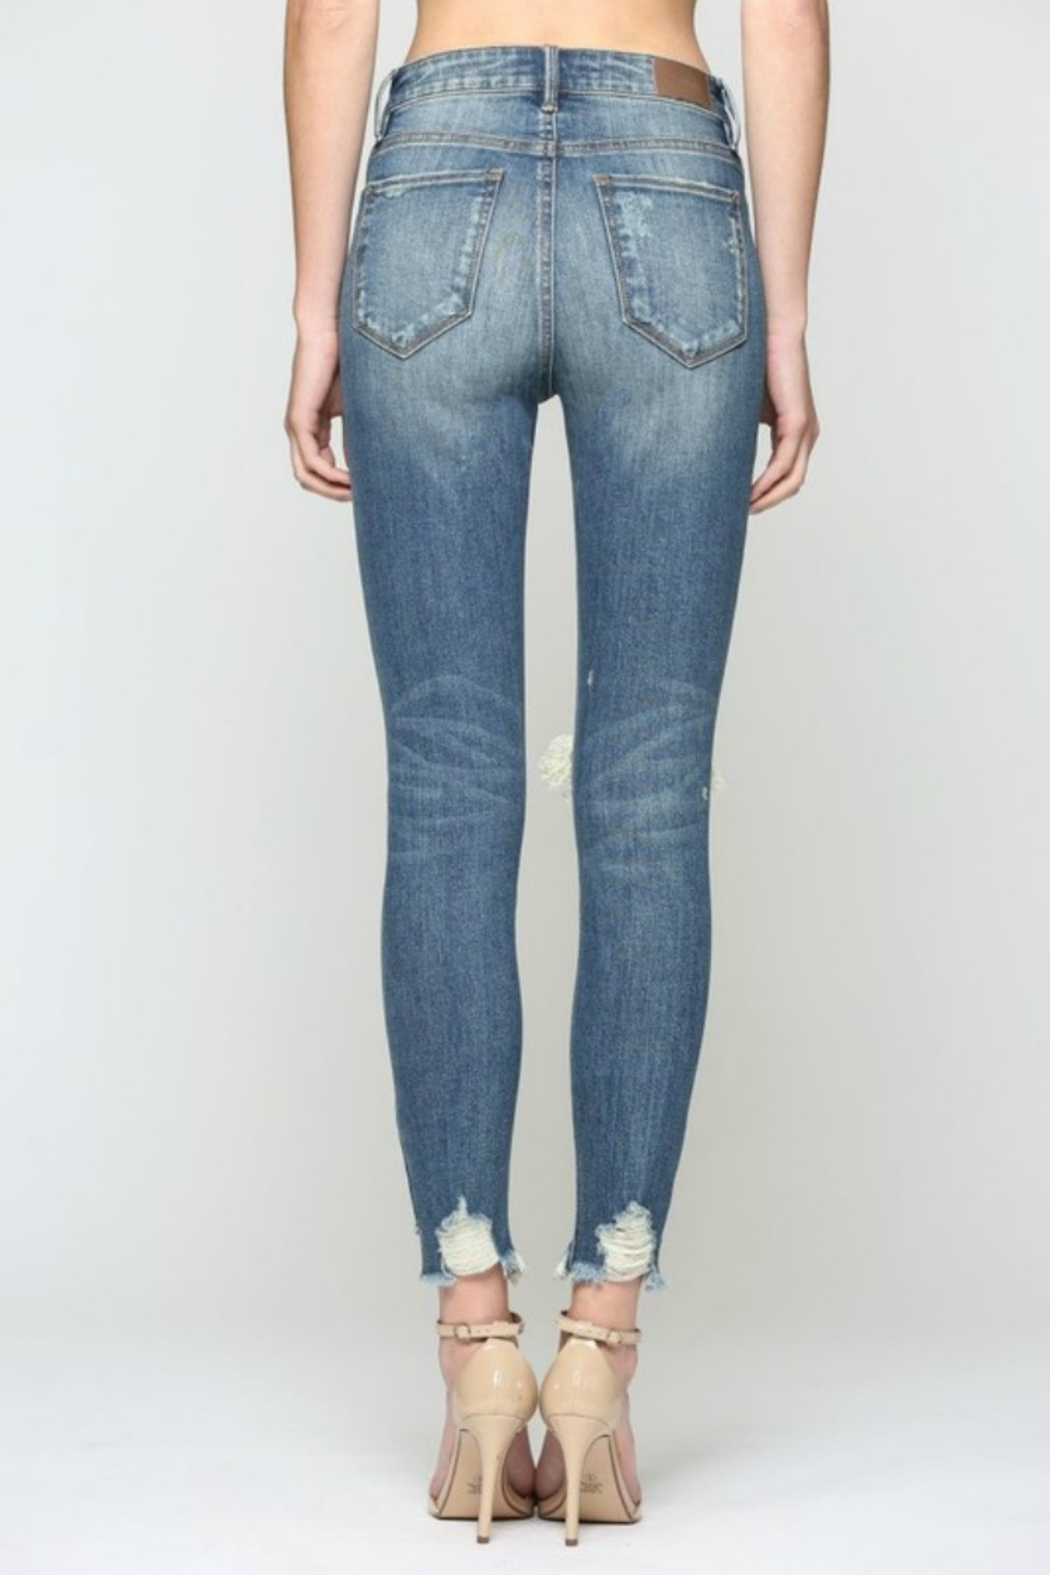 Hidden Jeans TAYOLOR HIGH RISE - Back Cropped Image